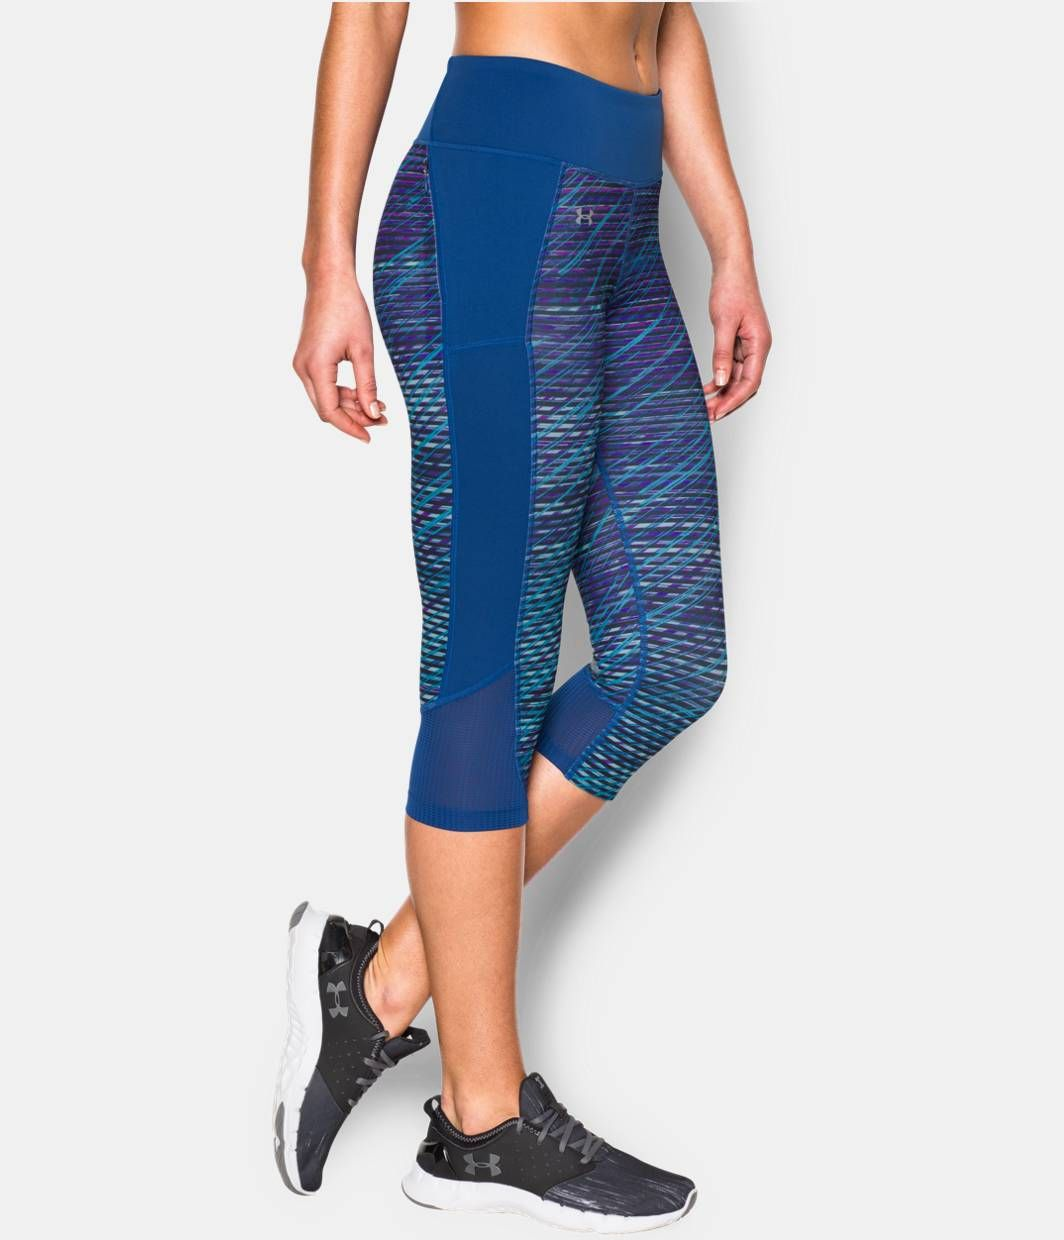 781bca4f25 Shop Under Armour for Women s UA Fly-By Printed Run Capri in our Womens  Bottoms department. Free shipping is available in US.